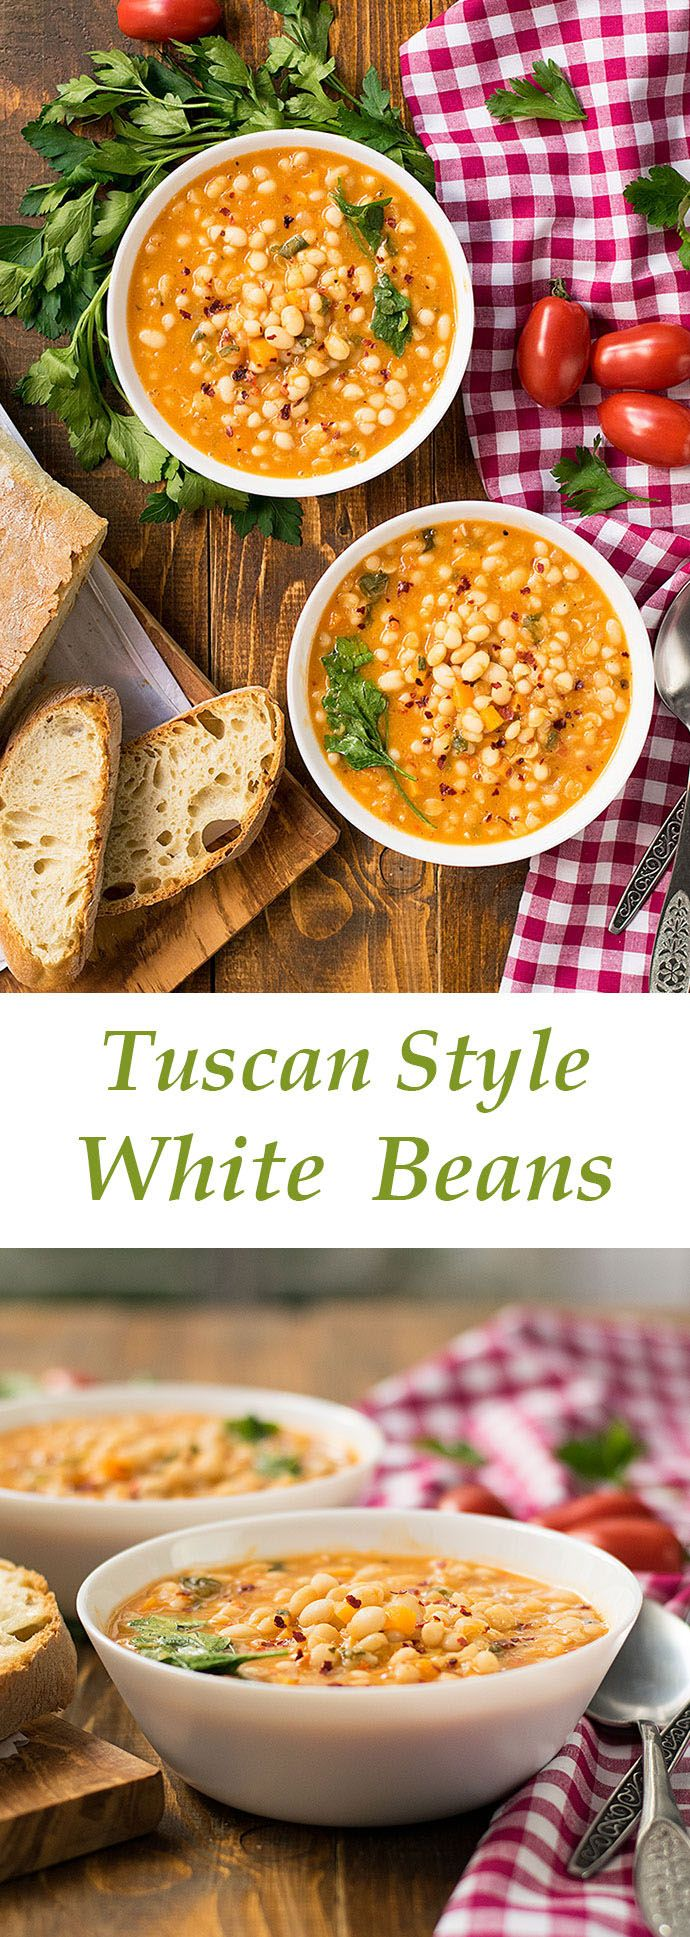 Tuscan Style White Beans Recipe In 2019 Hearty Soups